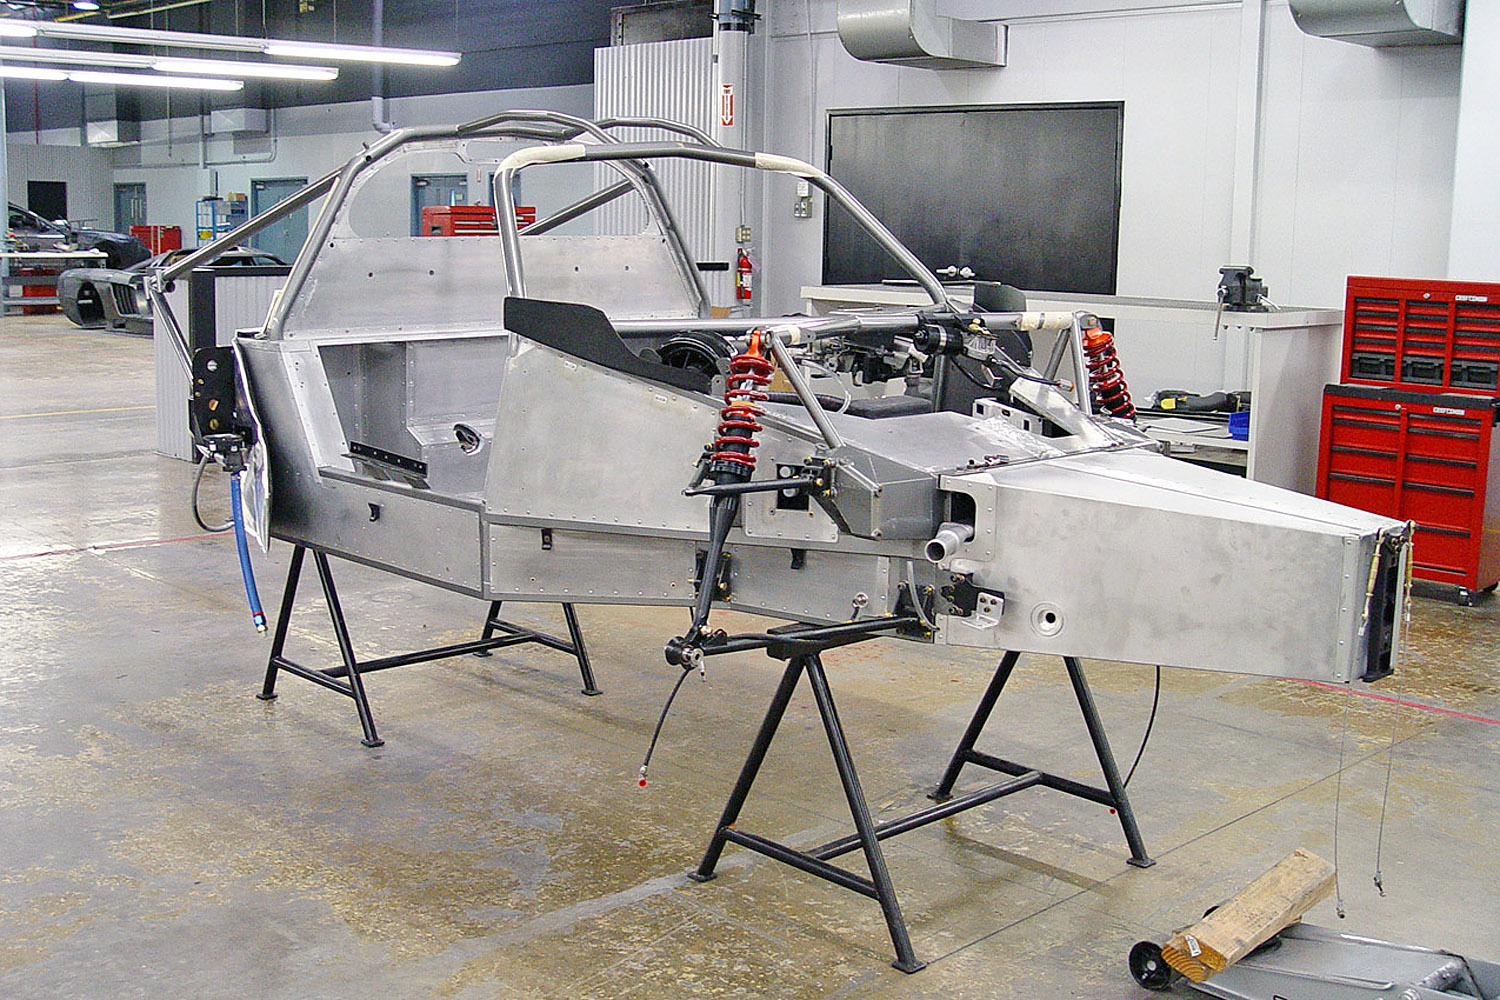 Saleen S7 chassis being dressed